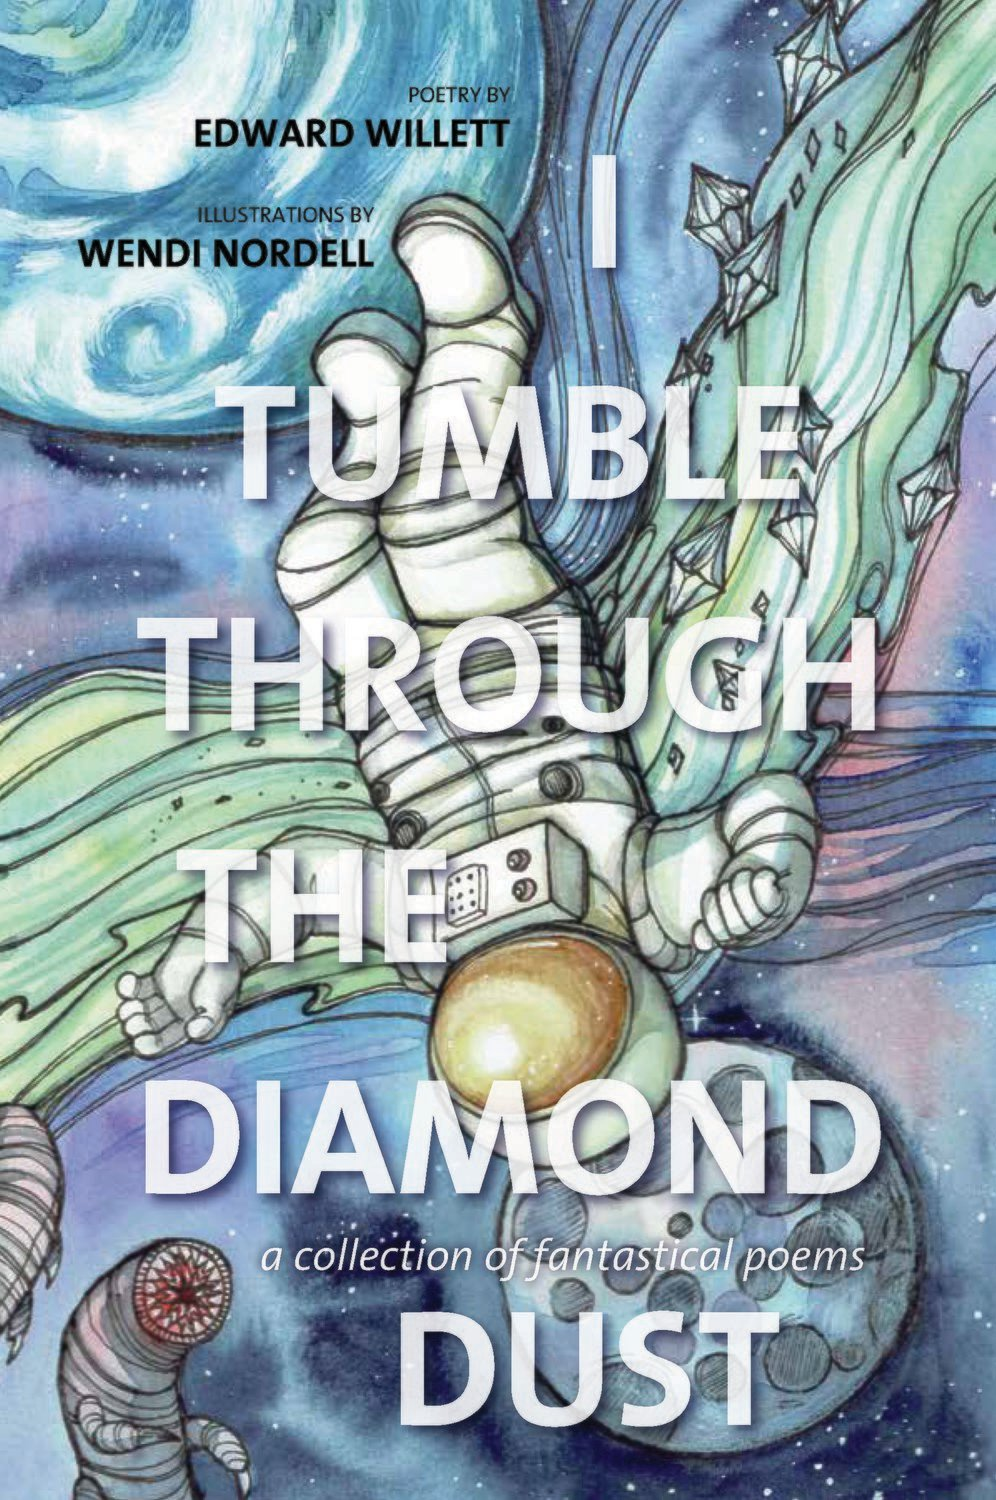 I Tumble Through The Diamond Dust: a collection of fantastical poems